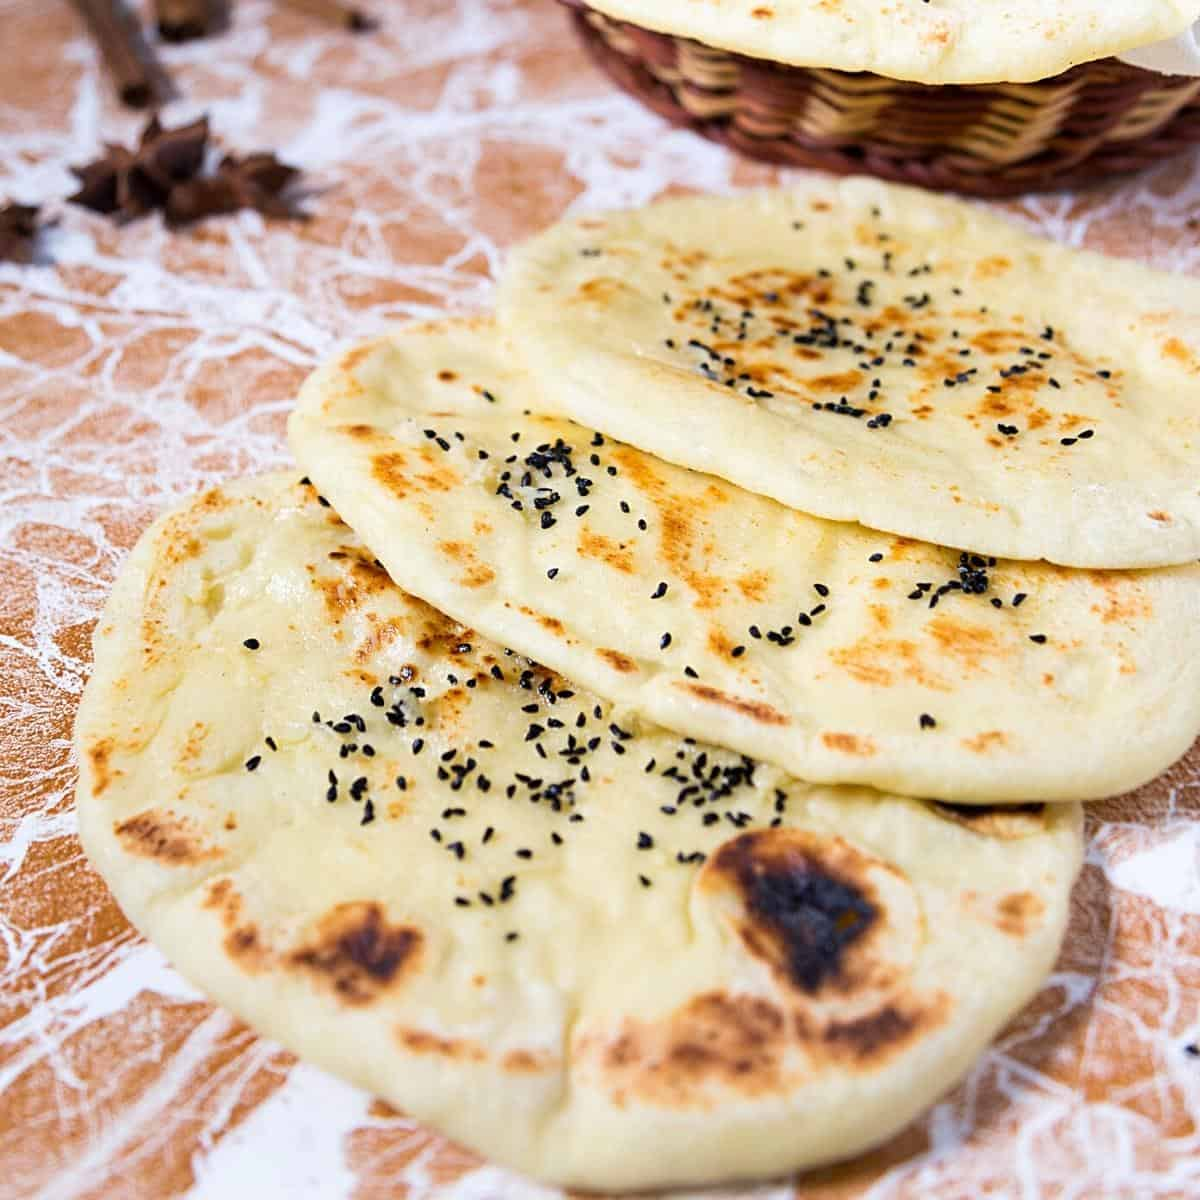 A stack of naan on the table.